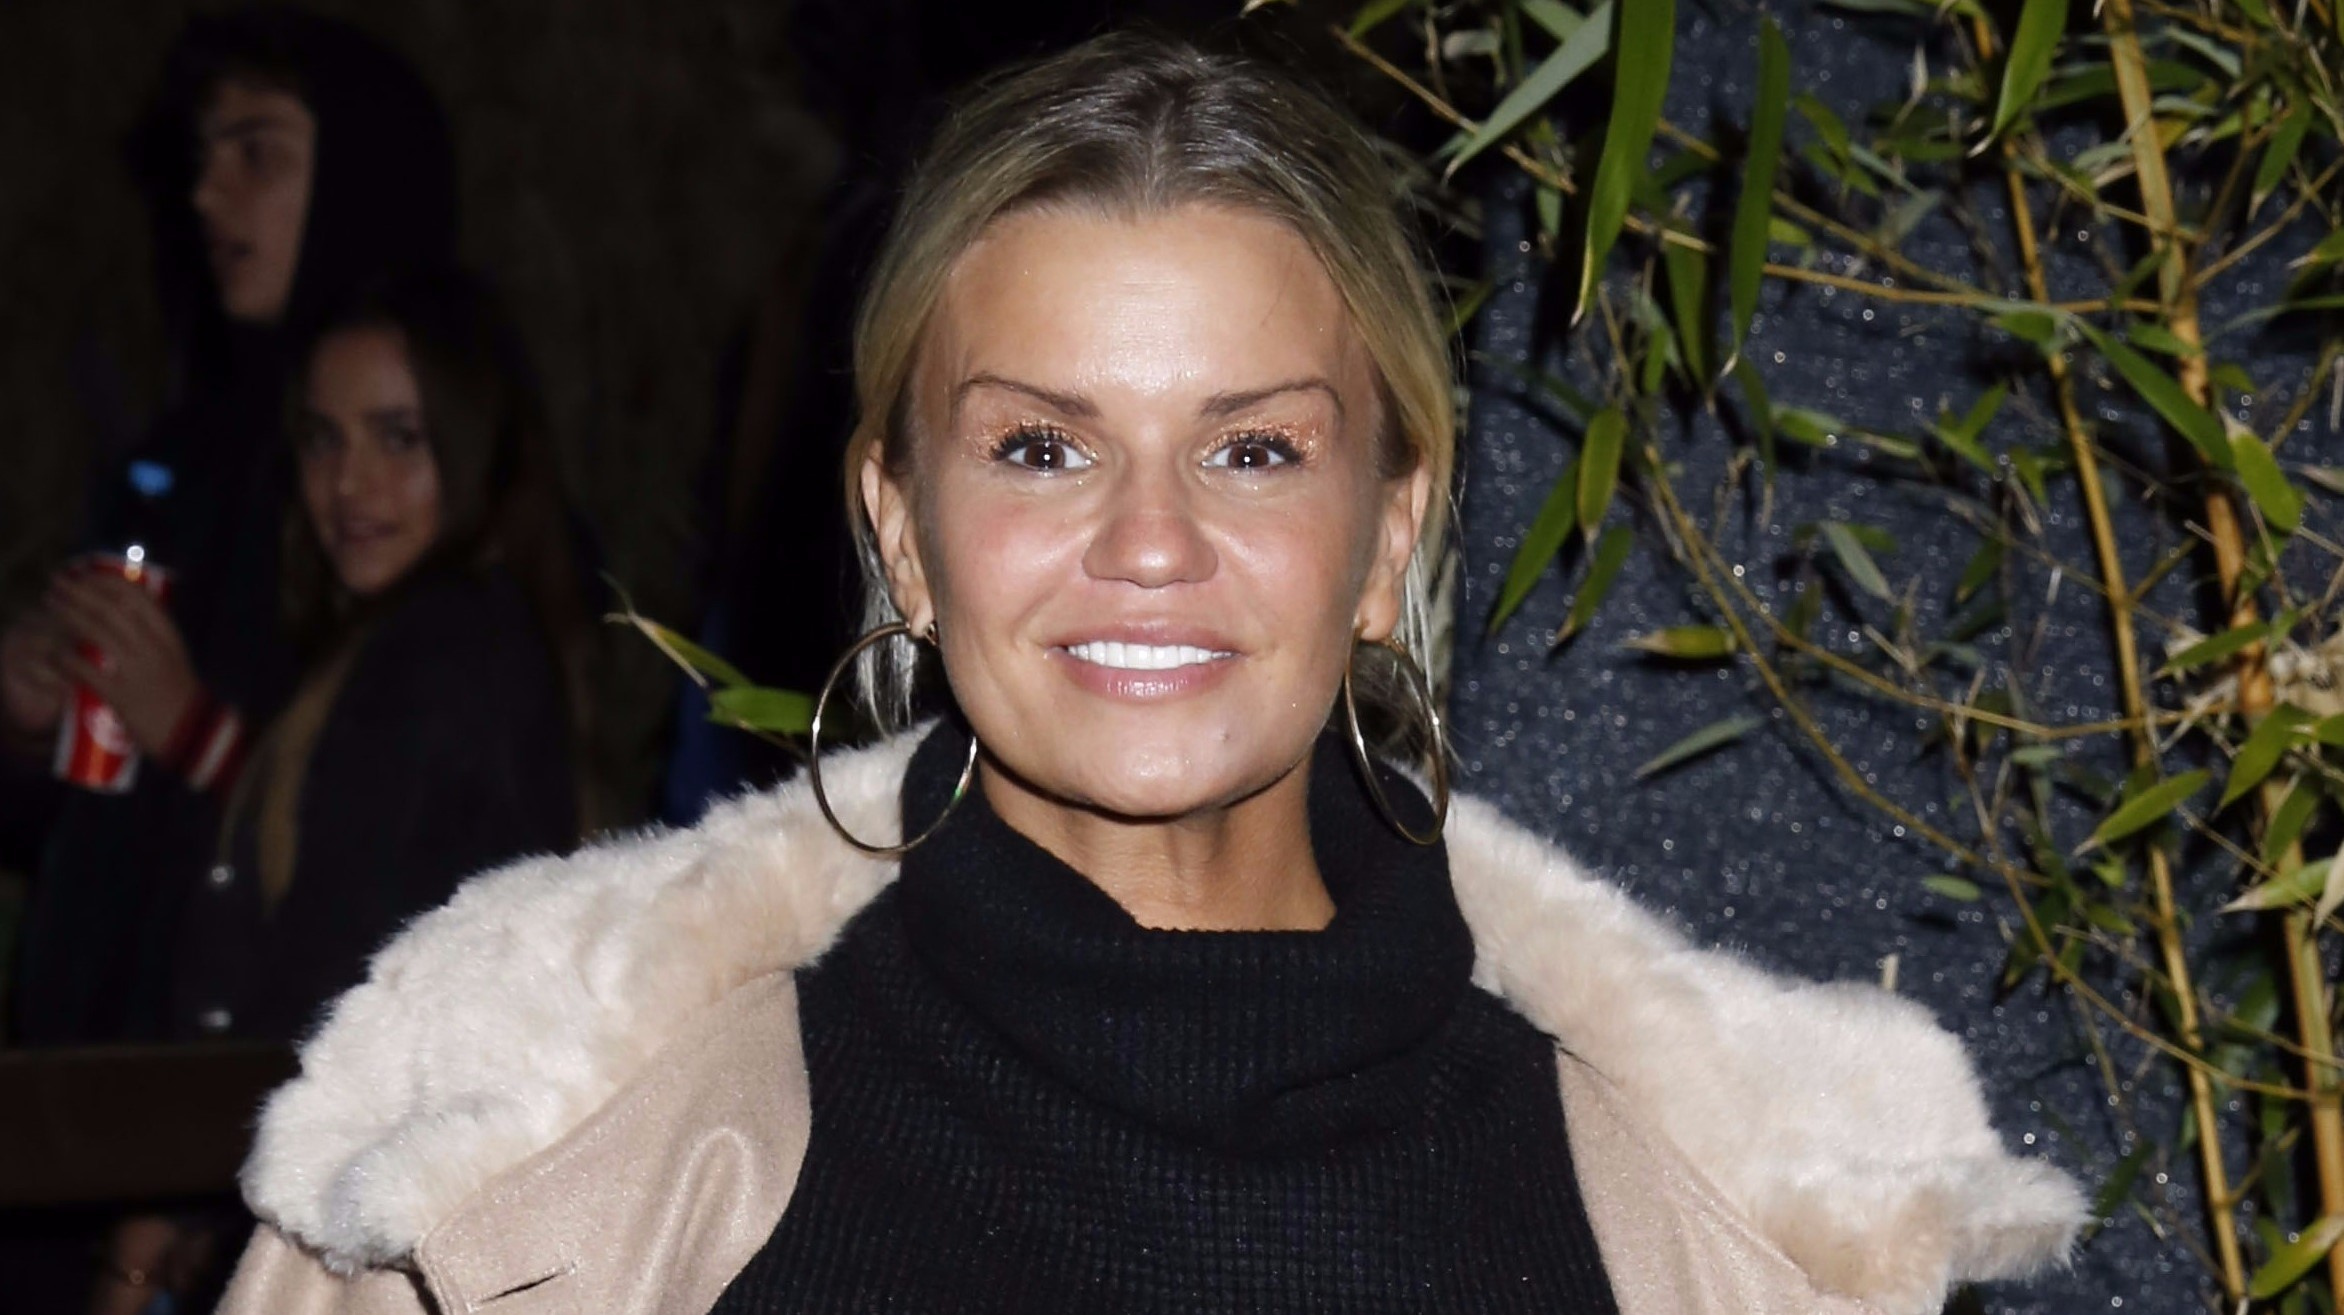 Proud Kerry Katona shares beautiful video of 'lookalike' daughter Lilly-Sue at her prom